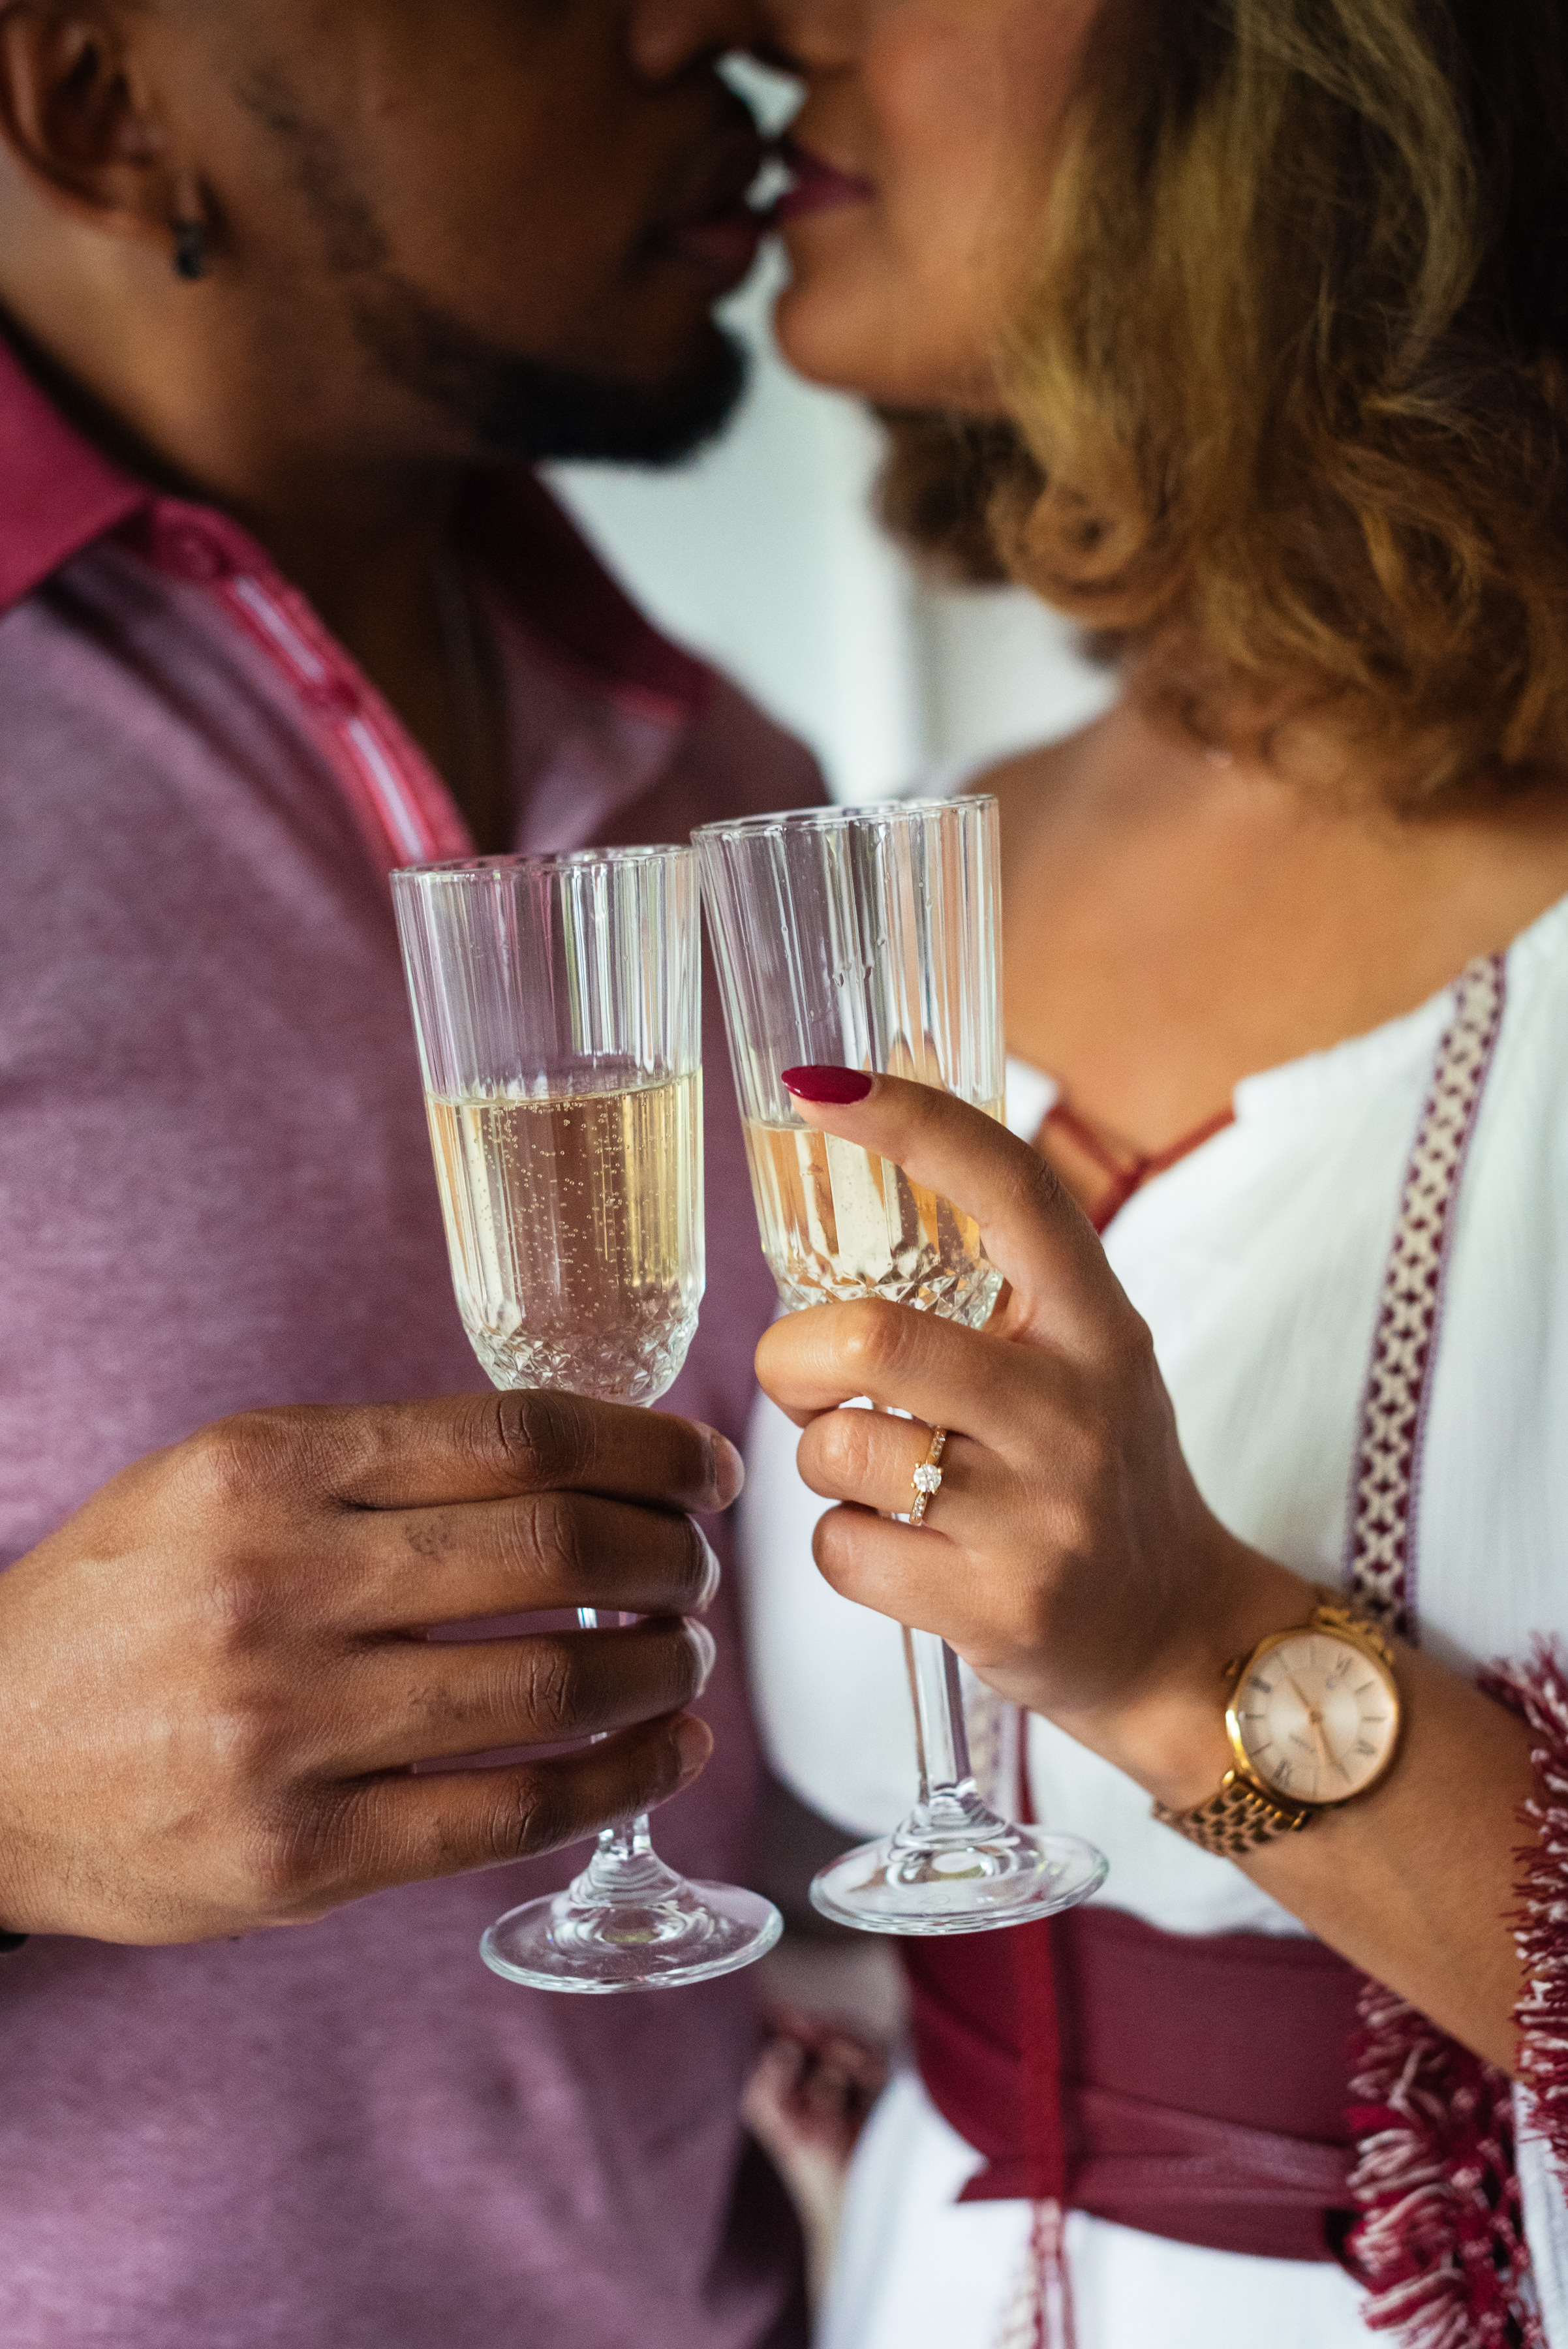 Closeup of champagne flutes with engaged couple